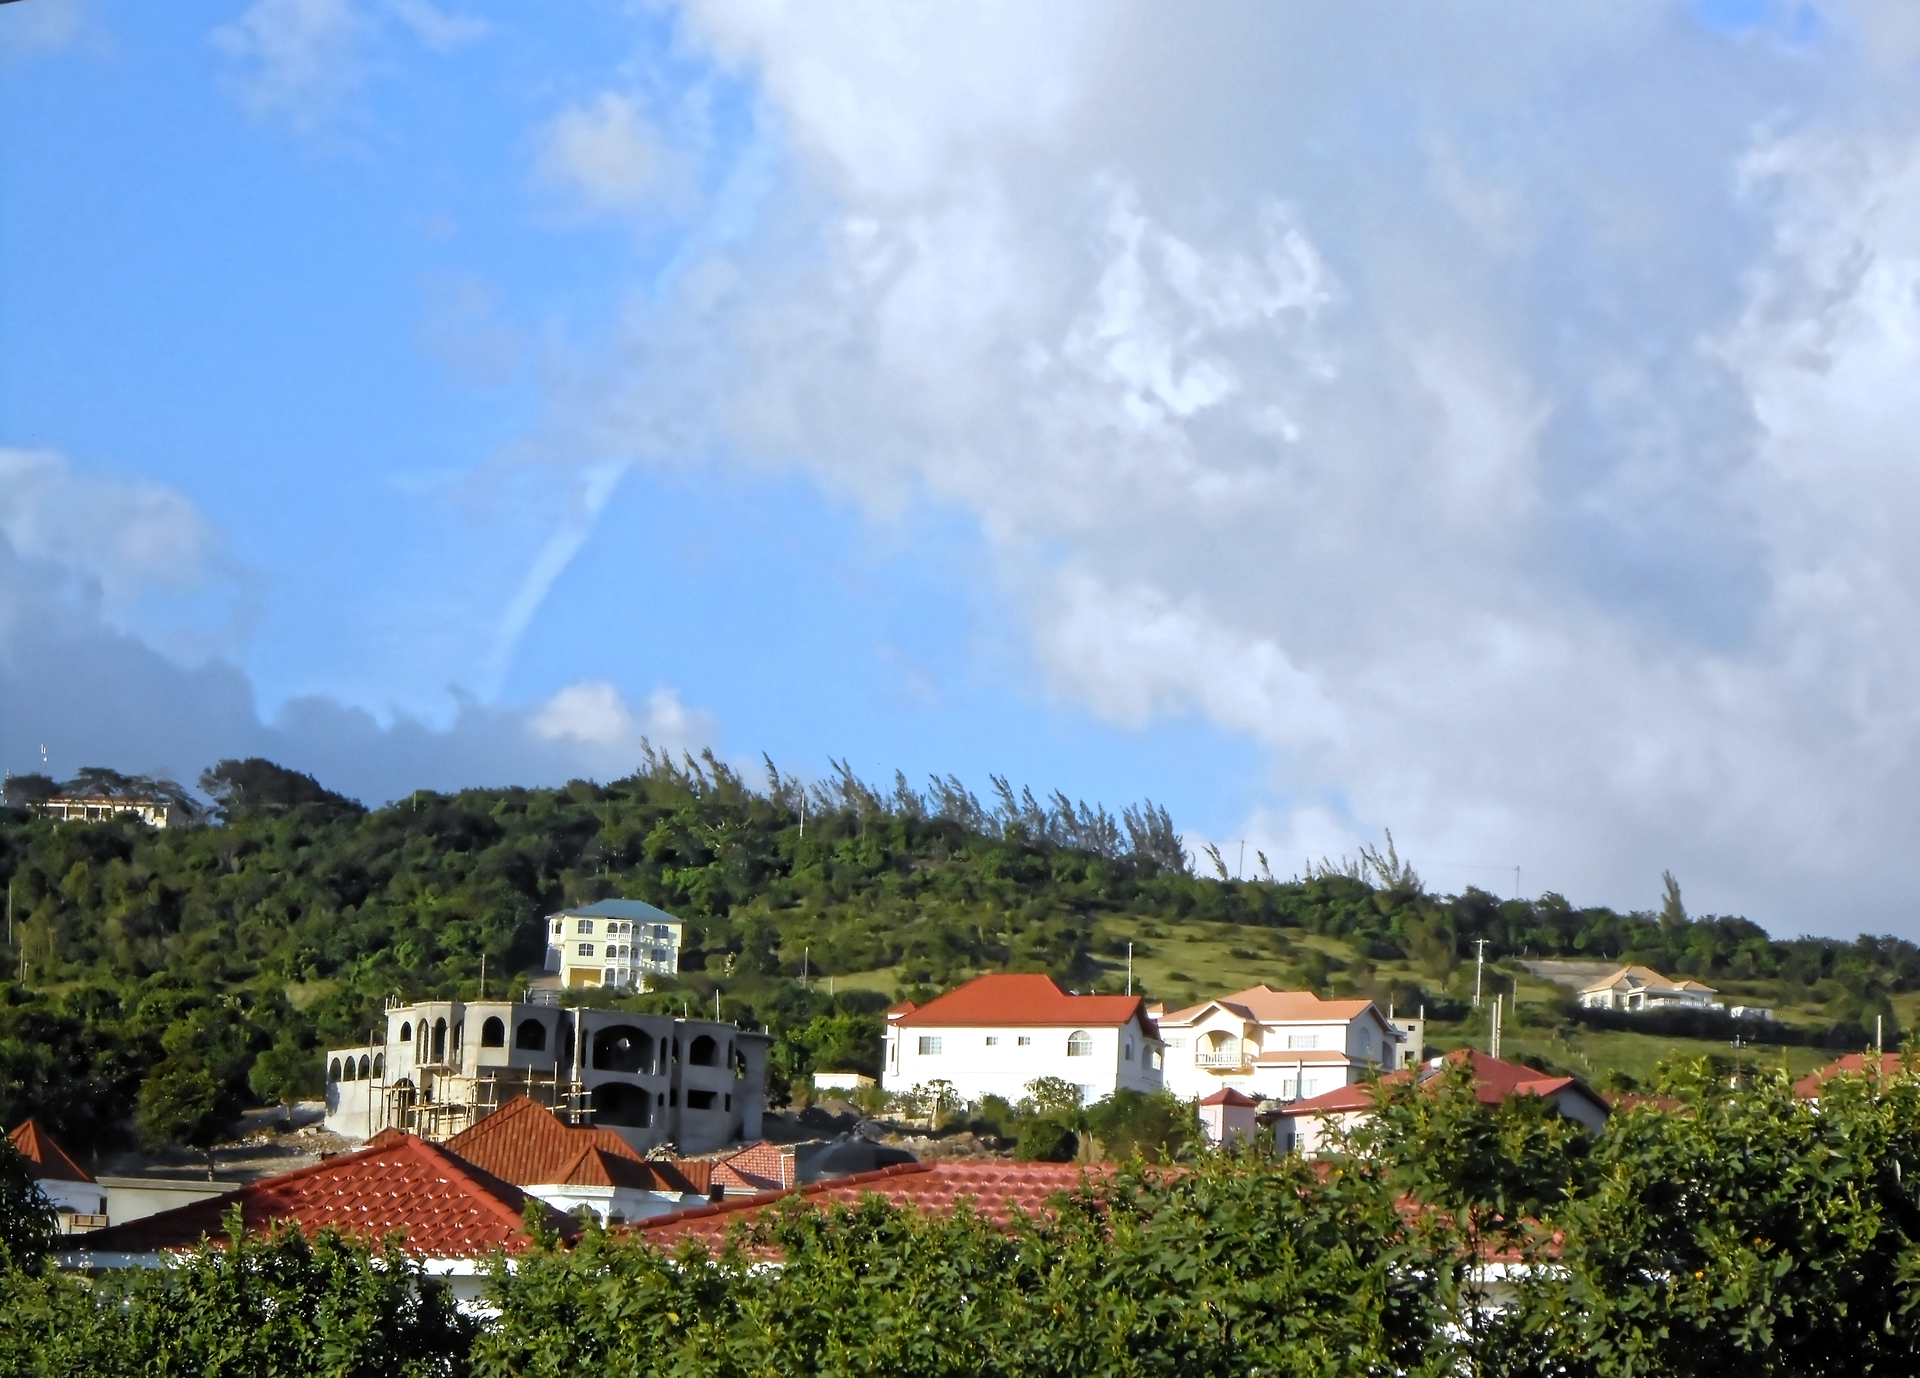 Houses on Hill | jacquelin, landscape, house, hill